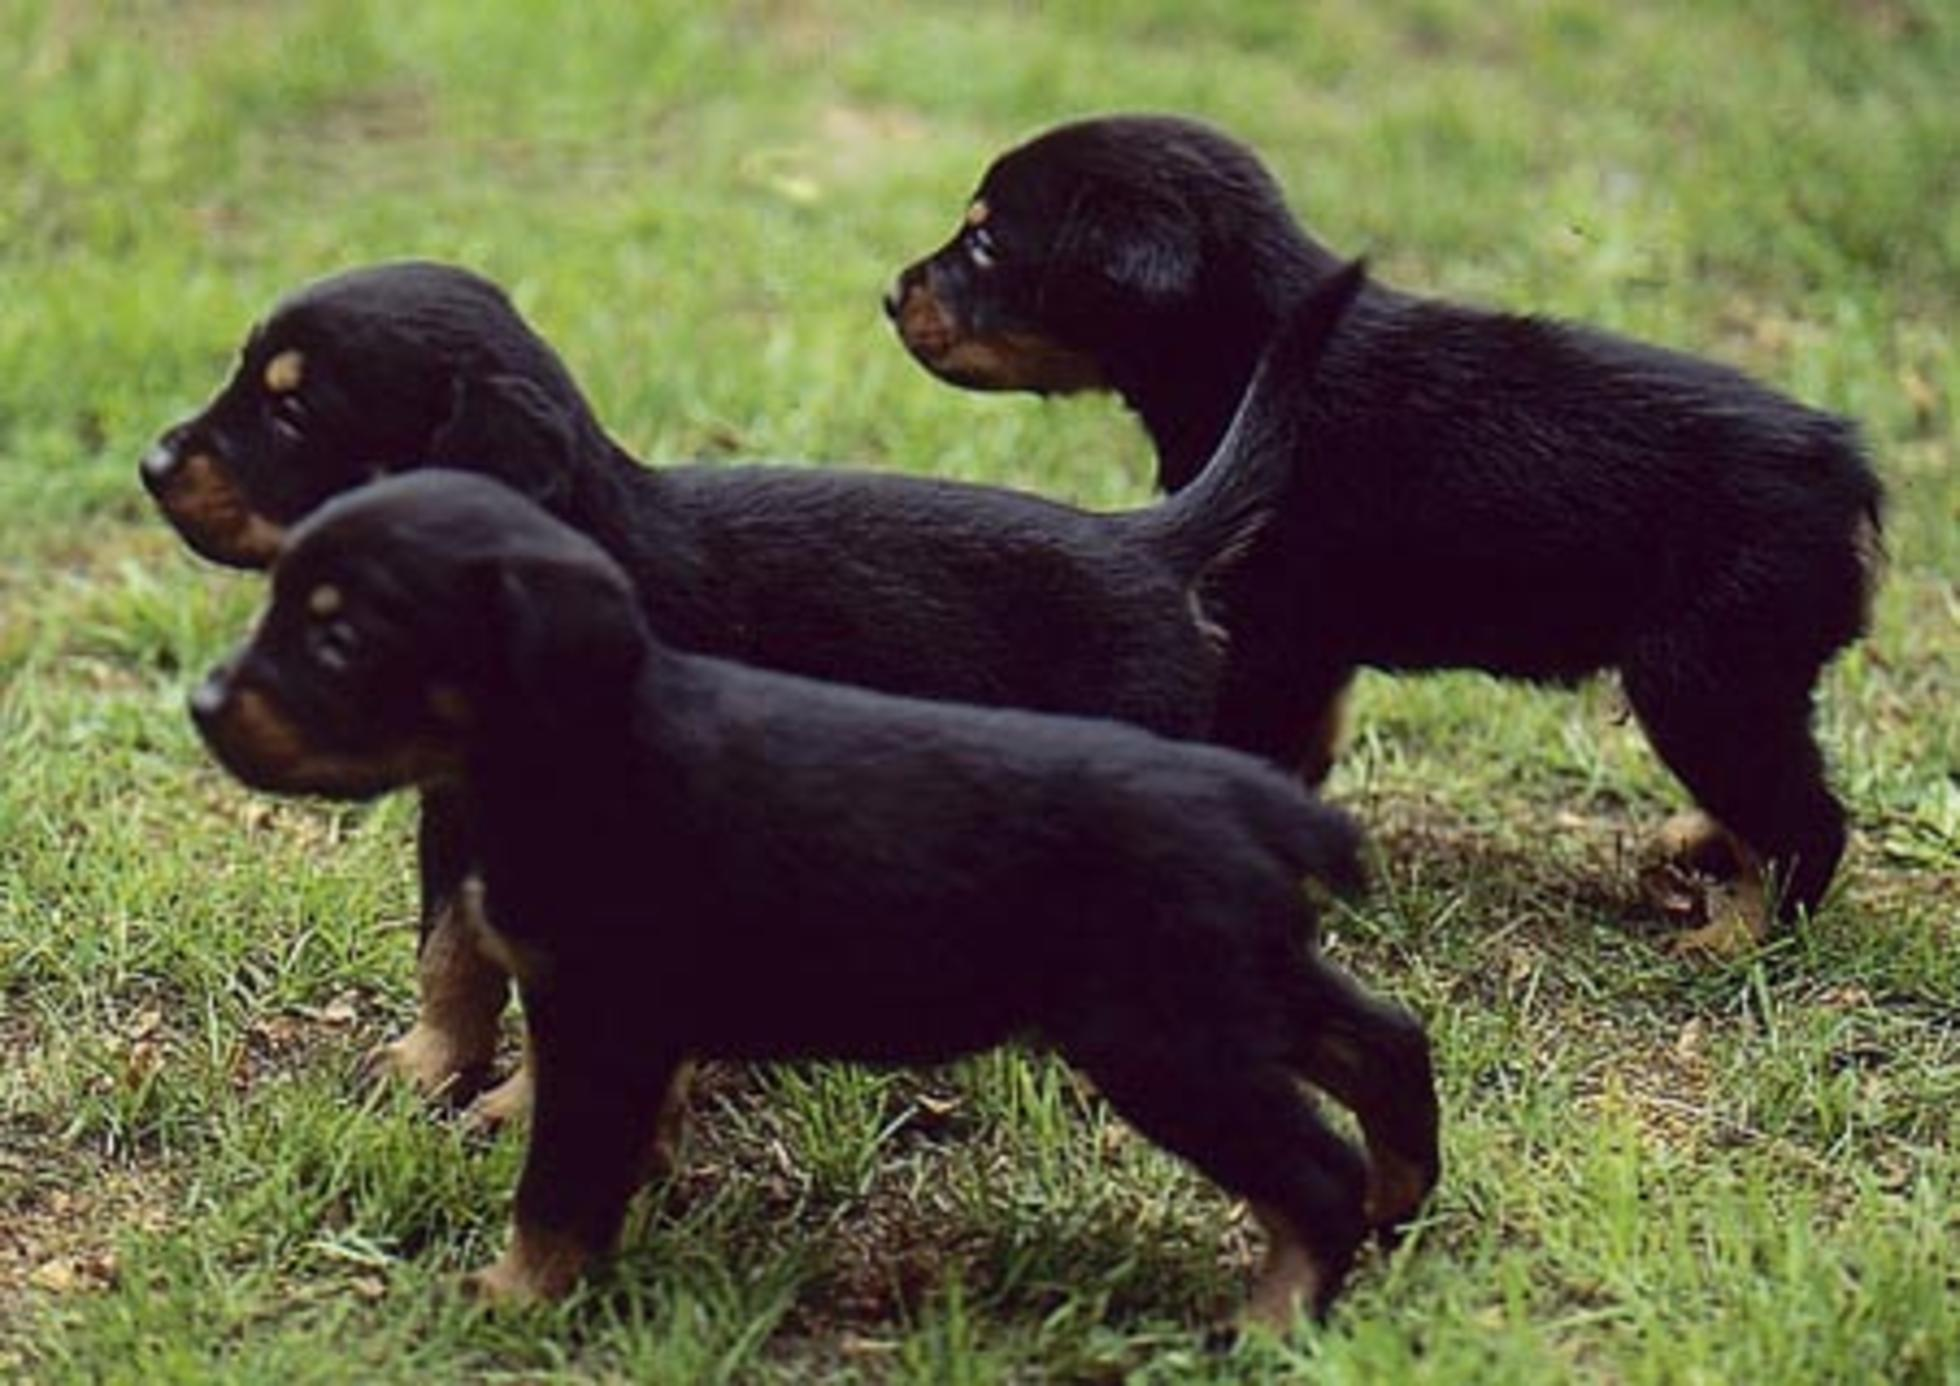 Sinhala Hound Puppies: Sinhala Smalandsstovare Puppies Breed